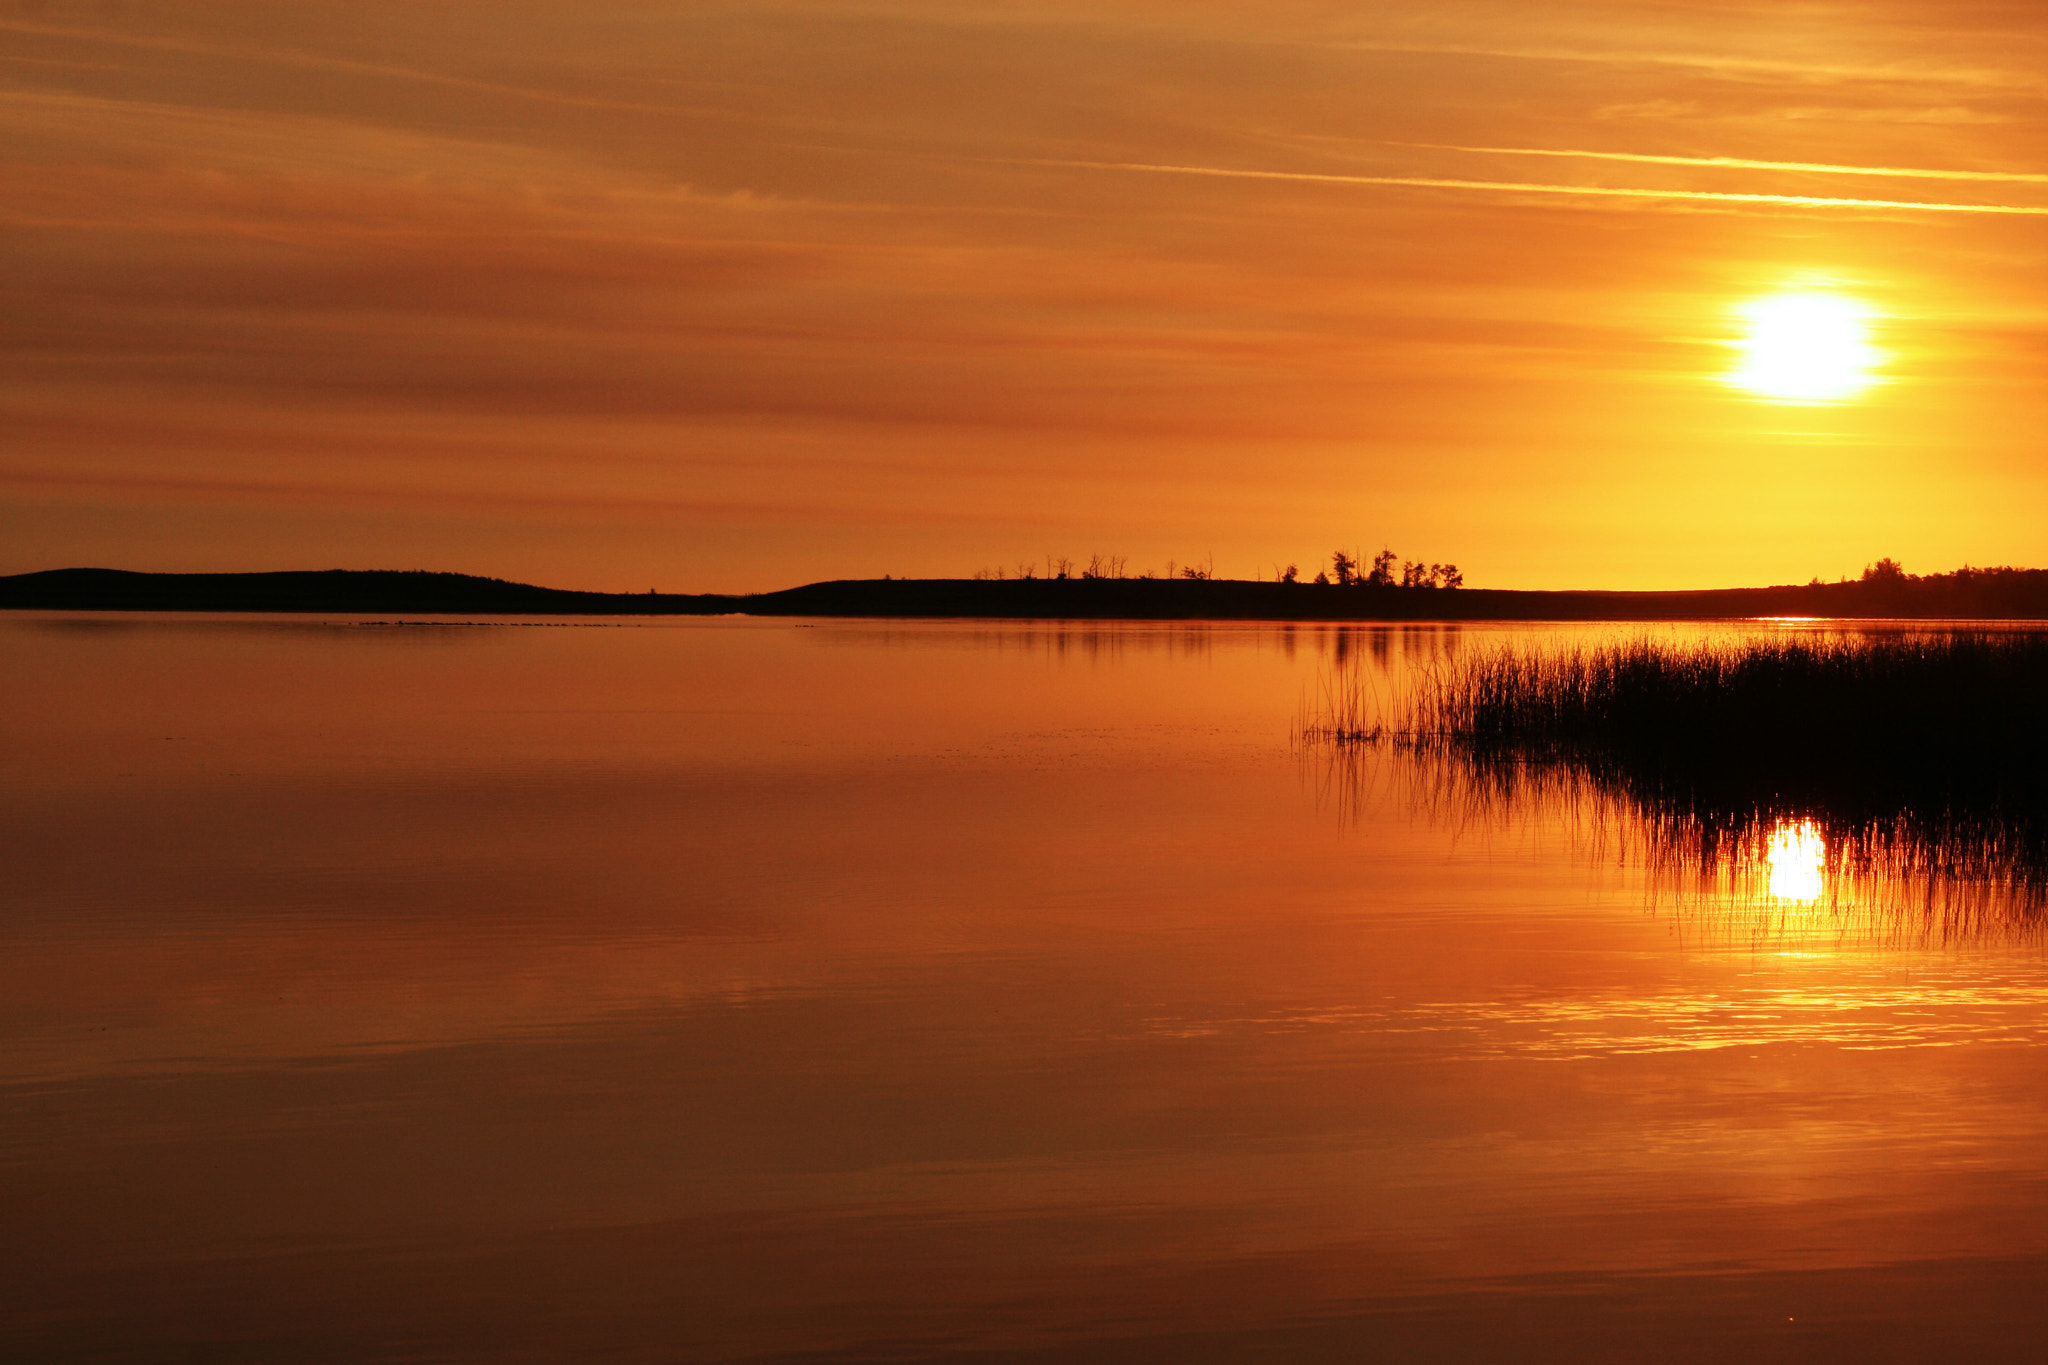 Photograph September sunrise by Garry Moore on 500px